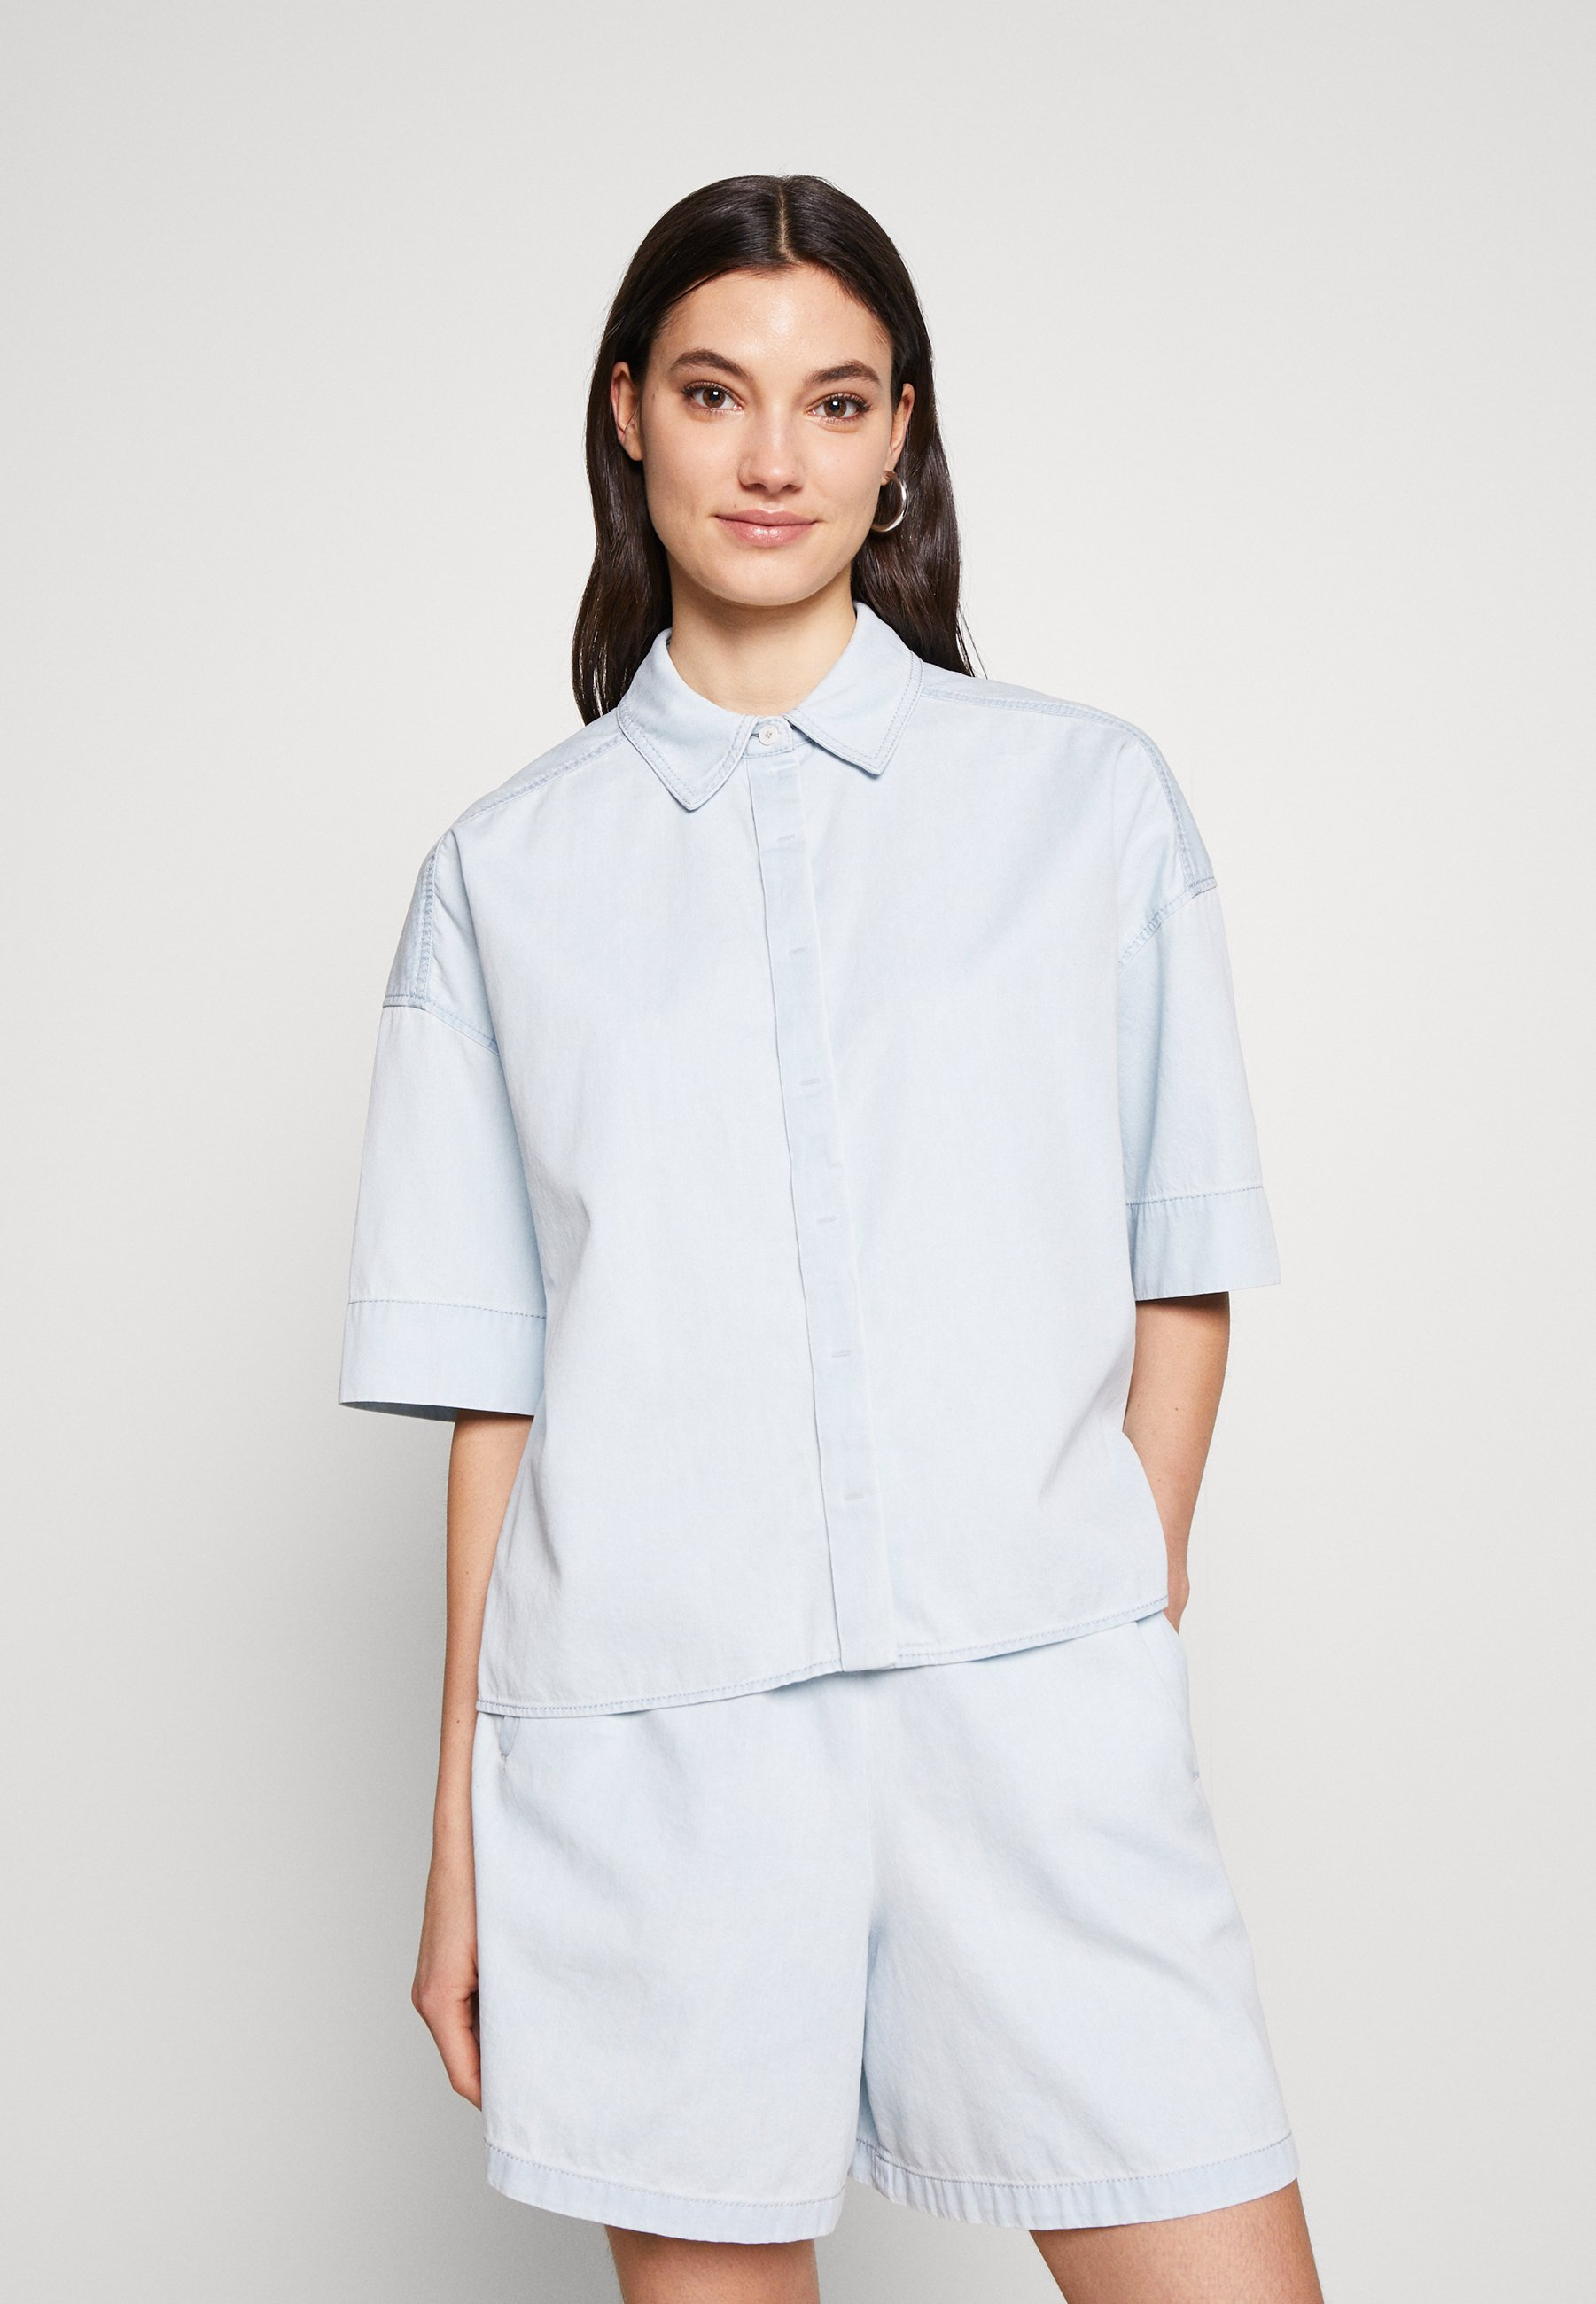 Factory Sale Women's Clothing DRYKORN THERRY Button-down blouse blau T3PG7RXlw